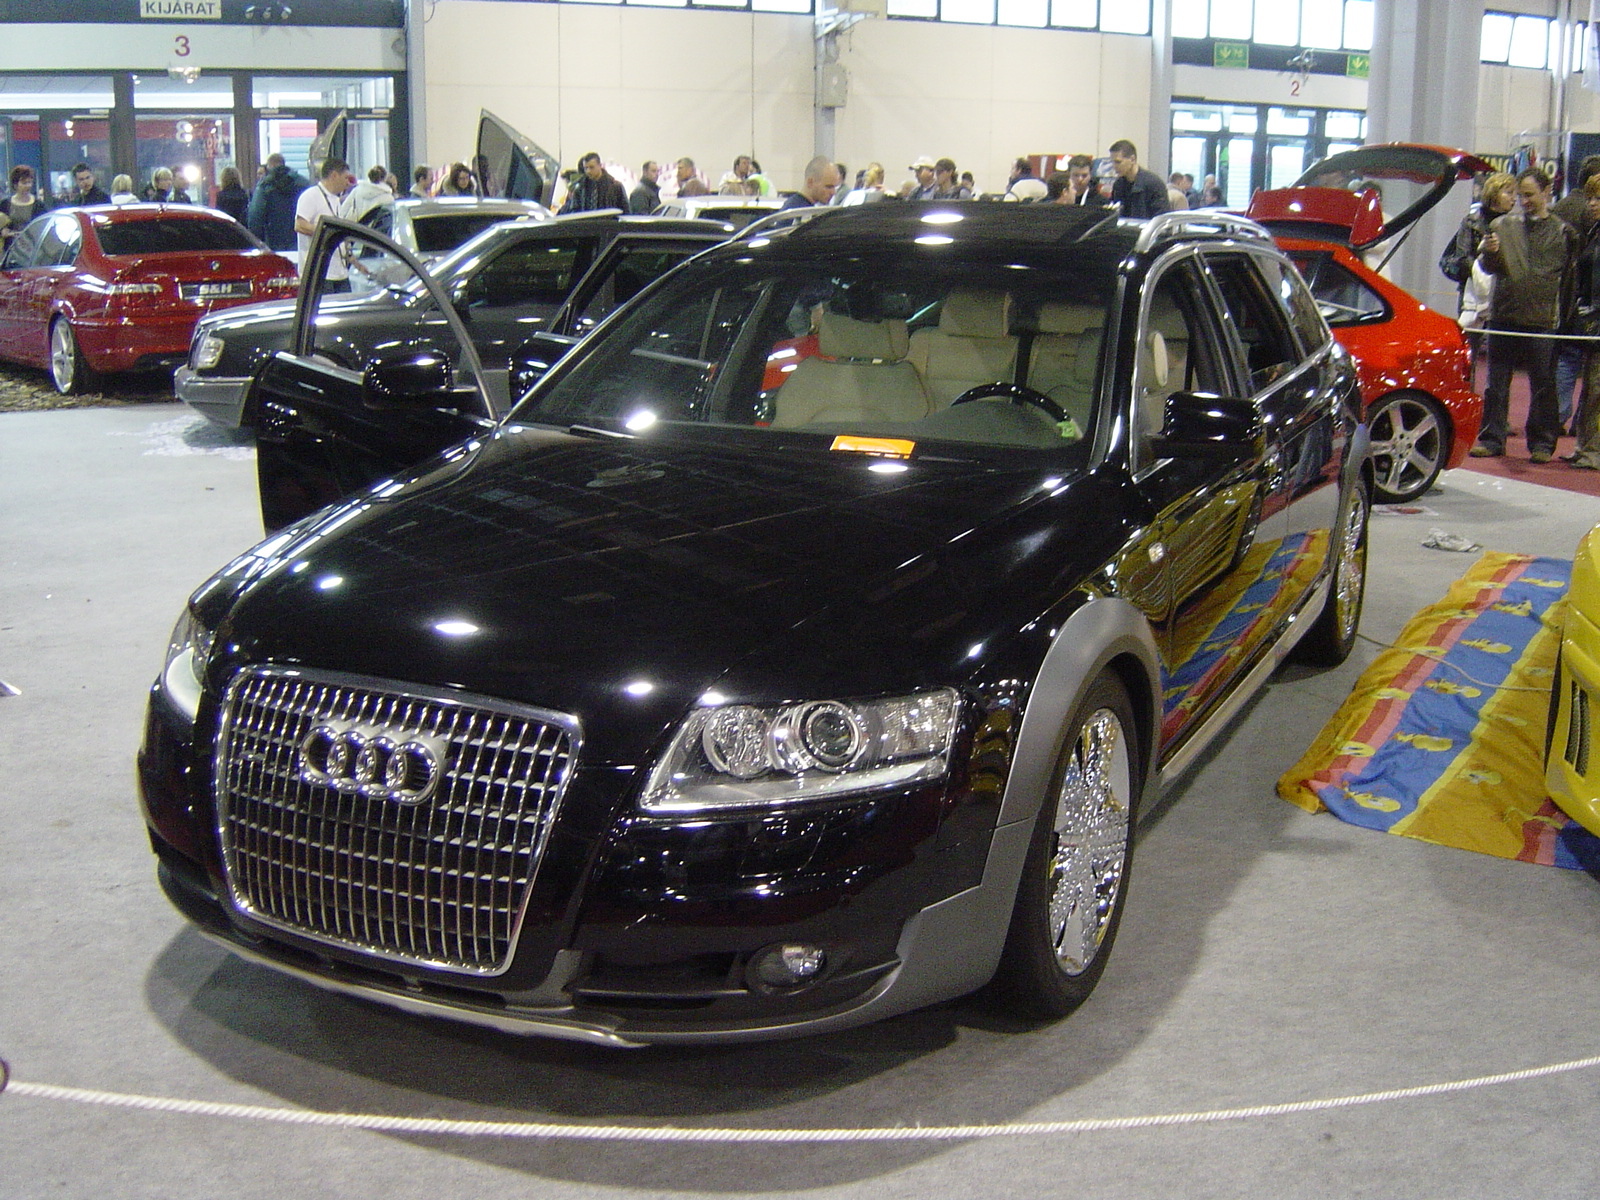 File Tuning Show 2008 036 Audi A6 Jpg Wikimedia Commons